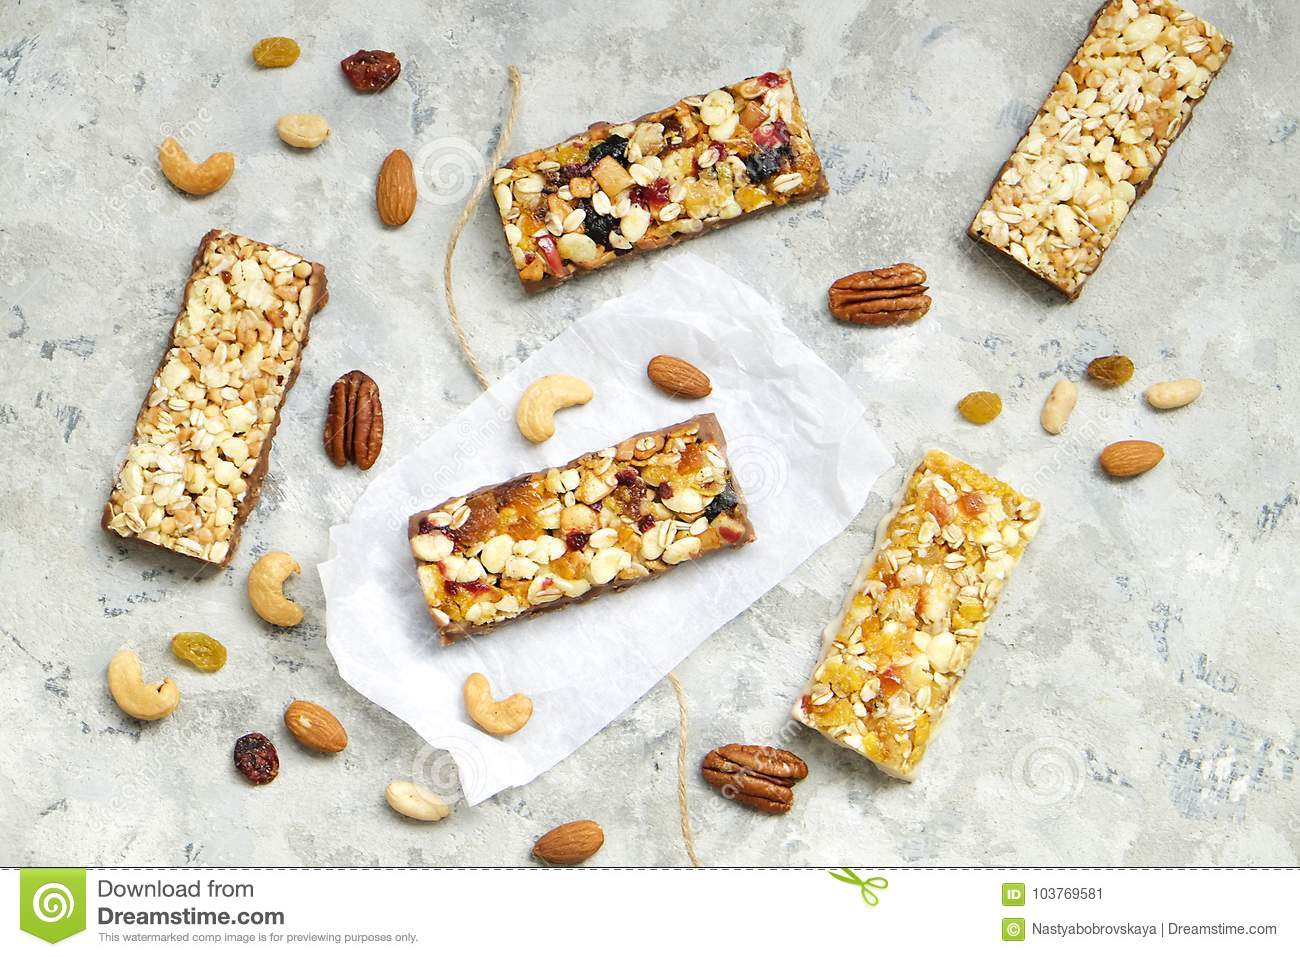 Cereal granola bars with nuts and dry berries on a white background download cereal granola bars with nuts and dry berries on a white background top view ccuart Image collections